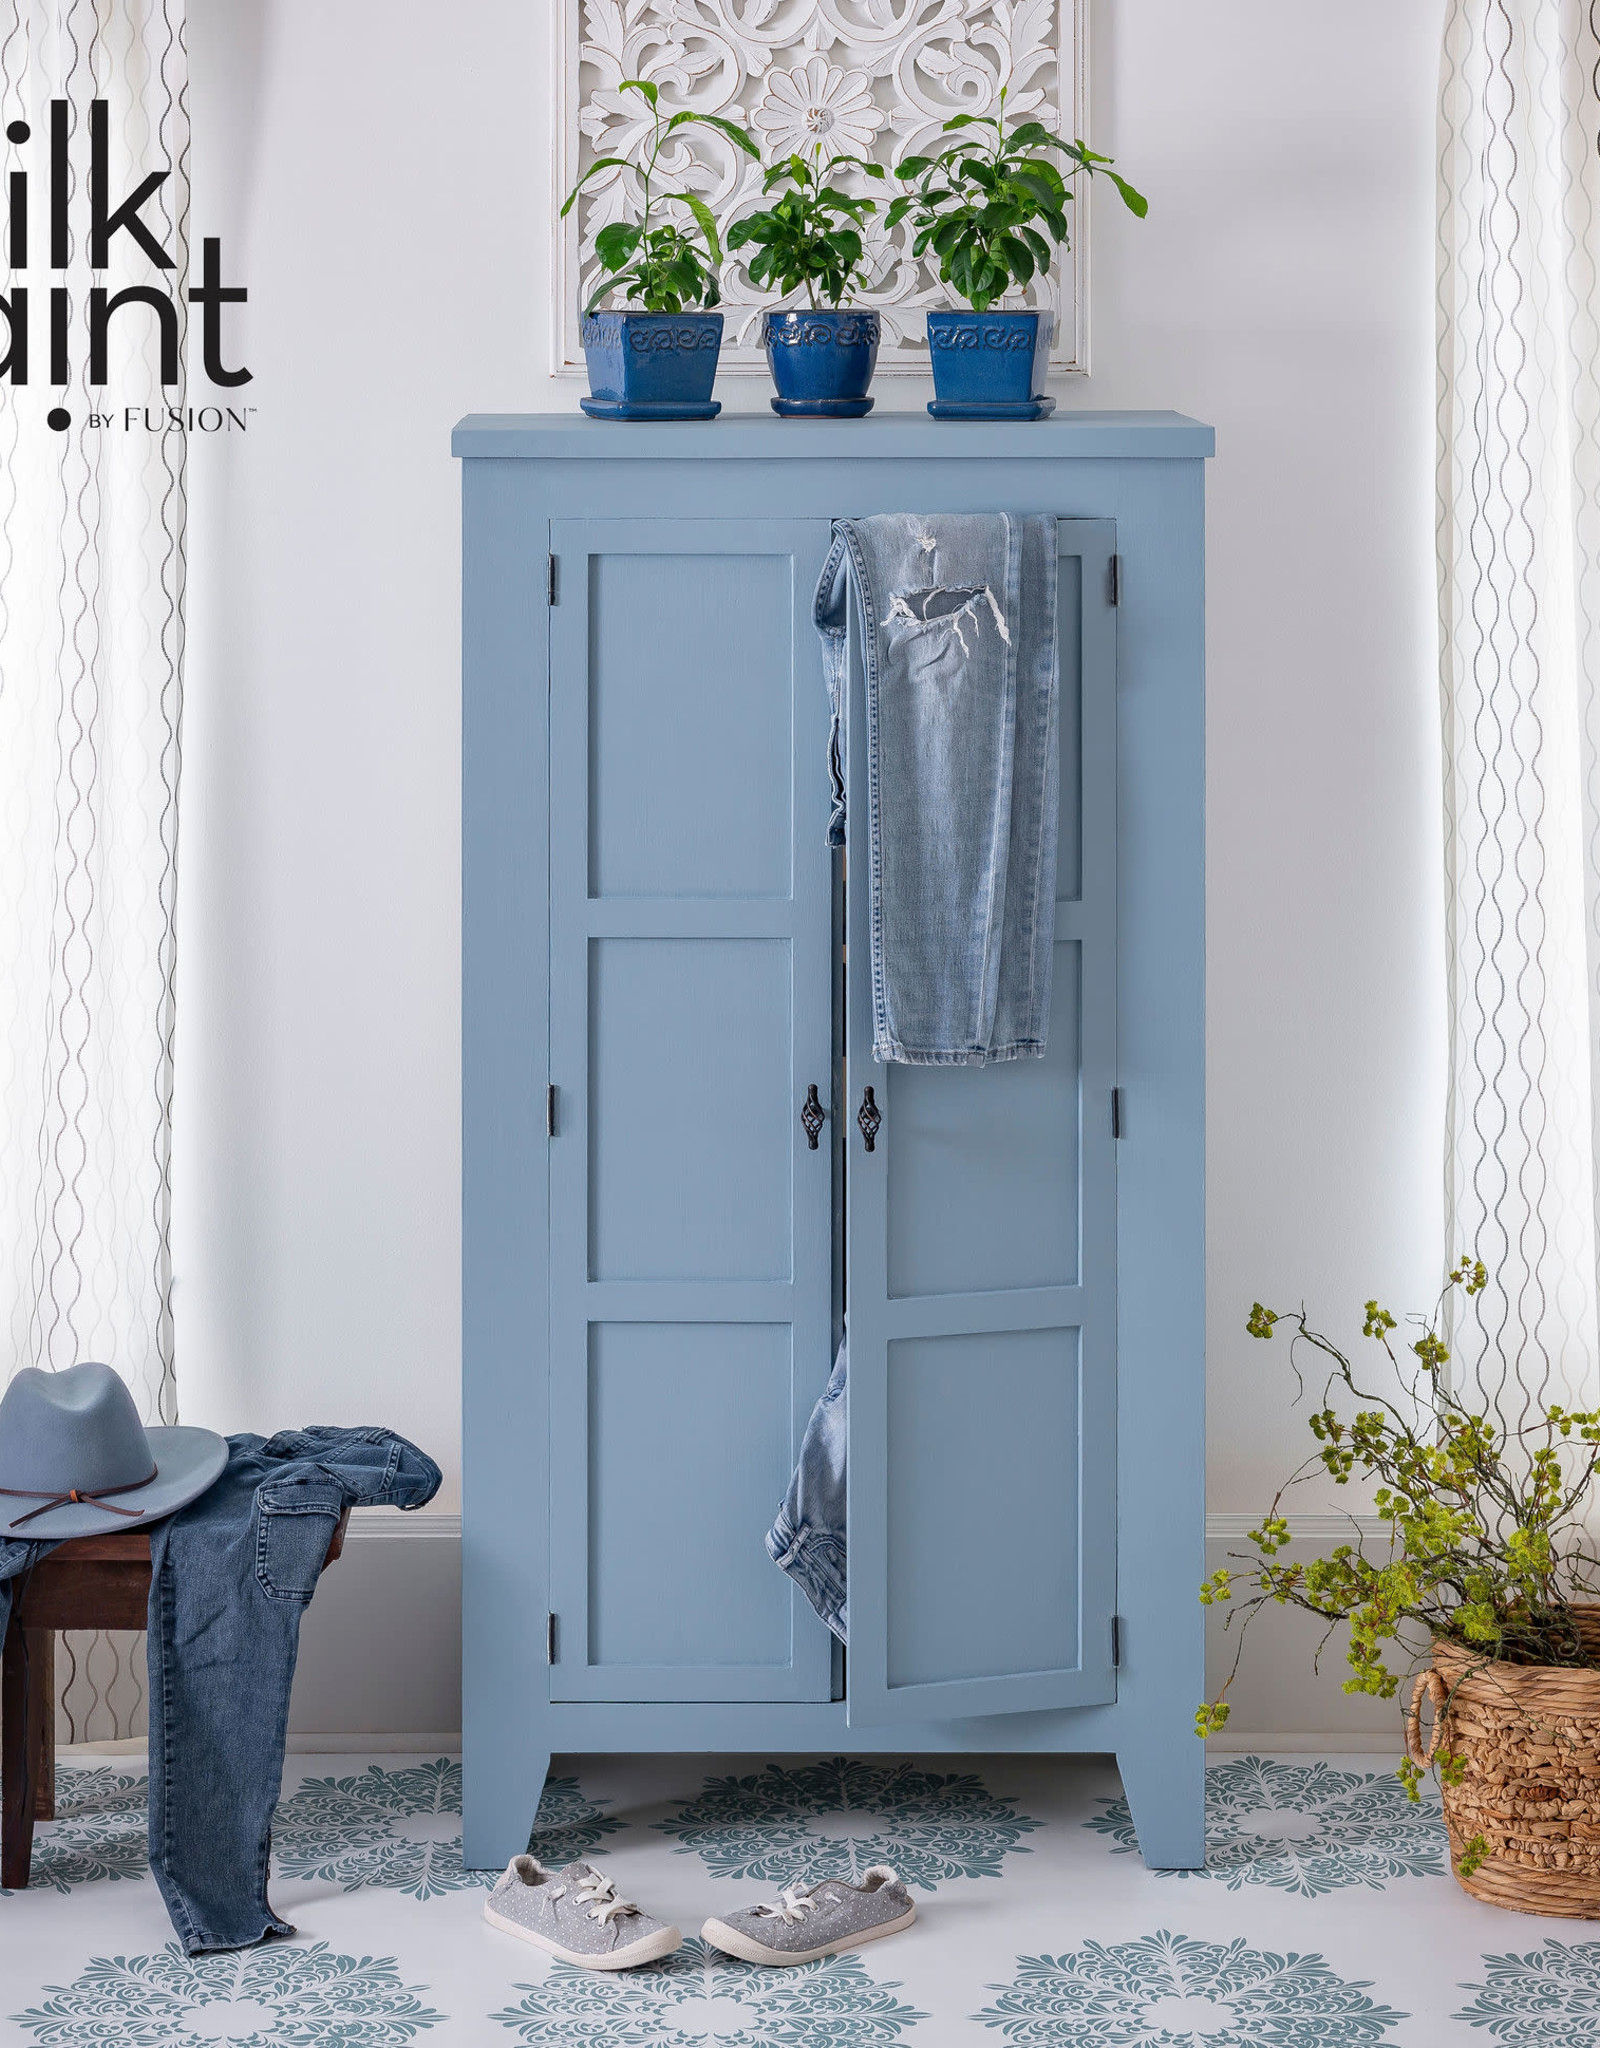 Fusion Mineral Paint Milk Paint 330g Skinny Jeans